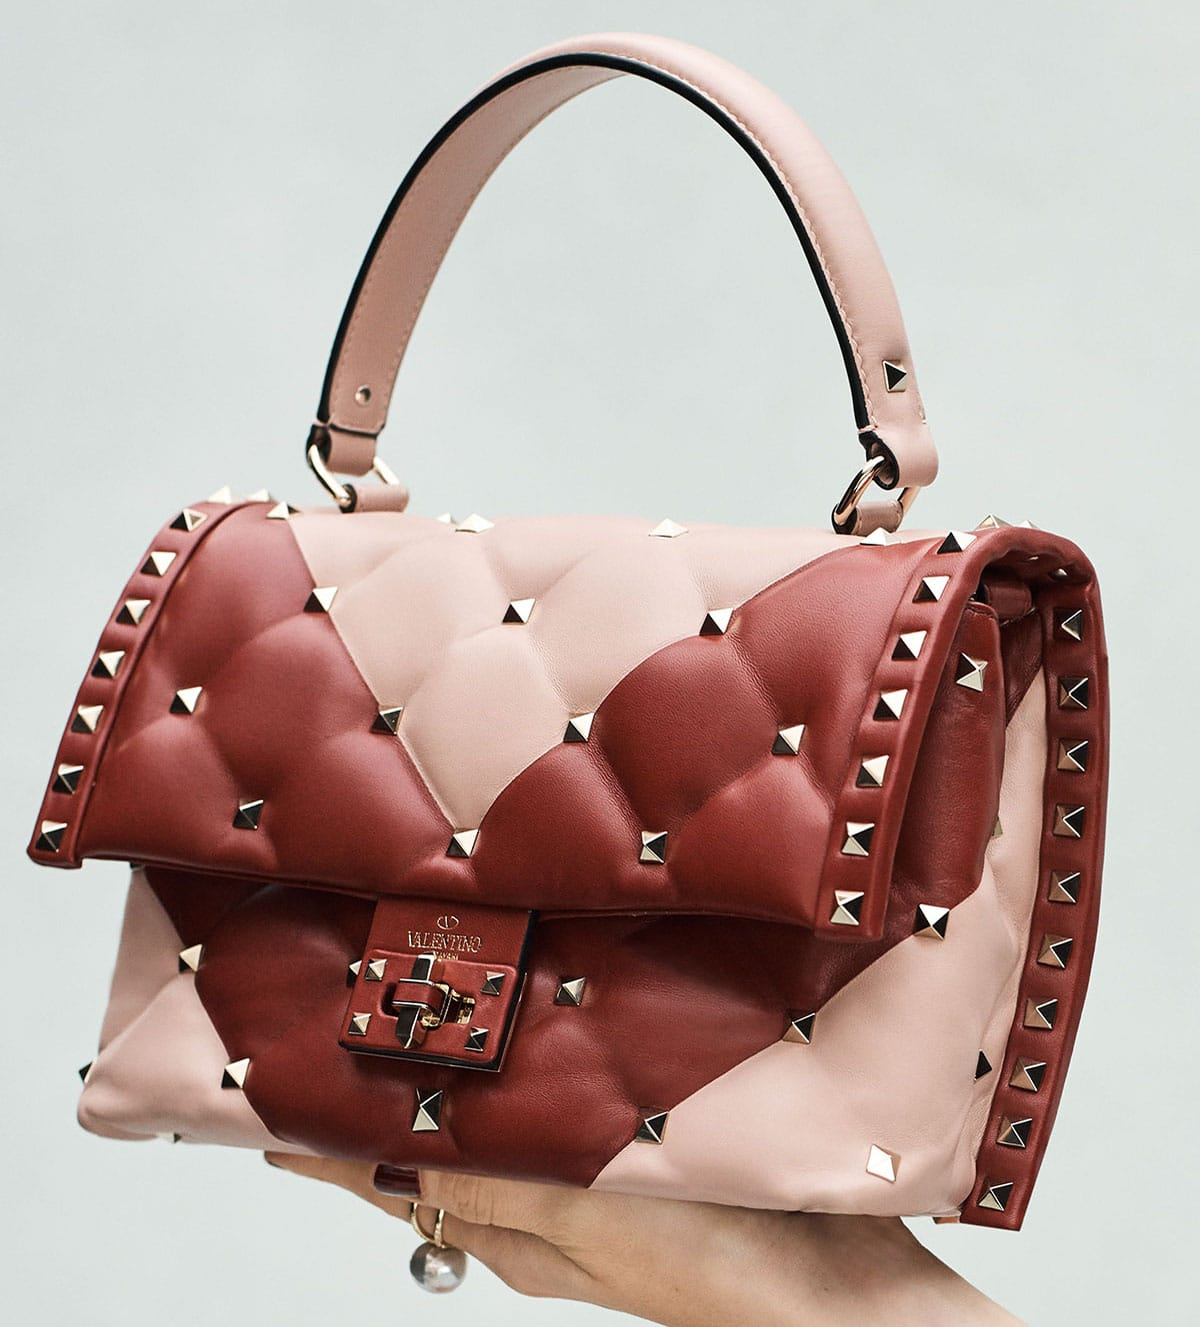 9ff65fb3a66c8 Valentino Candystud Bag Reference Guide | Spotted Fashion